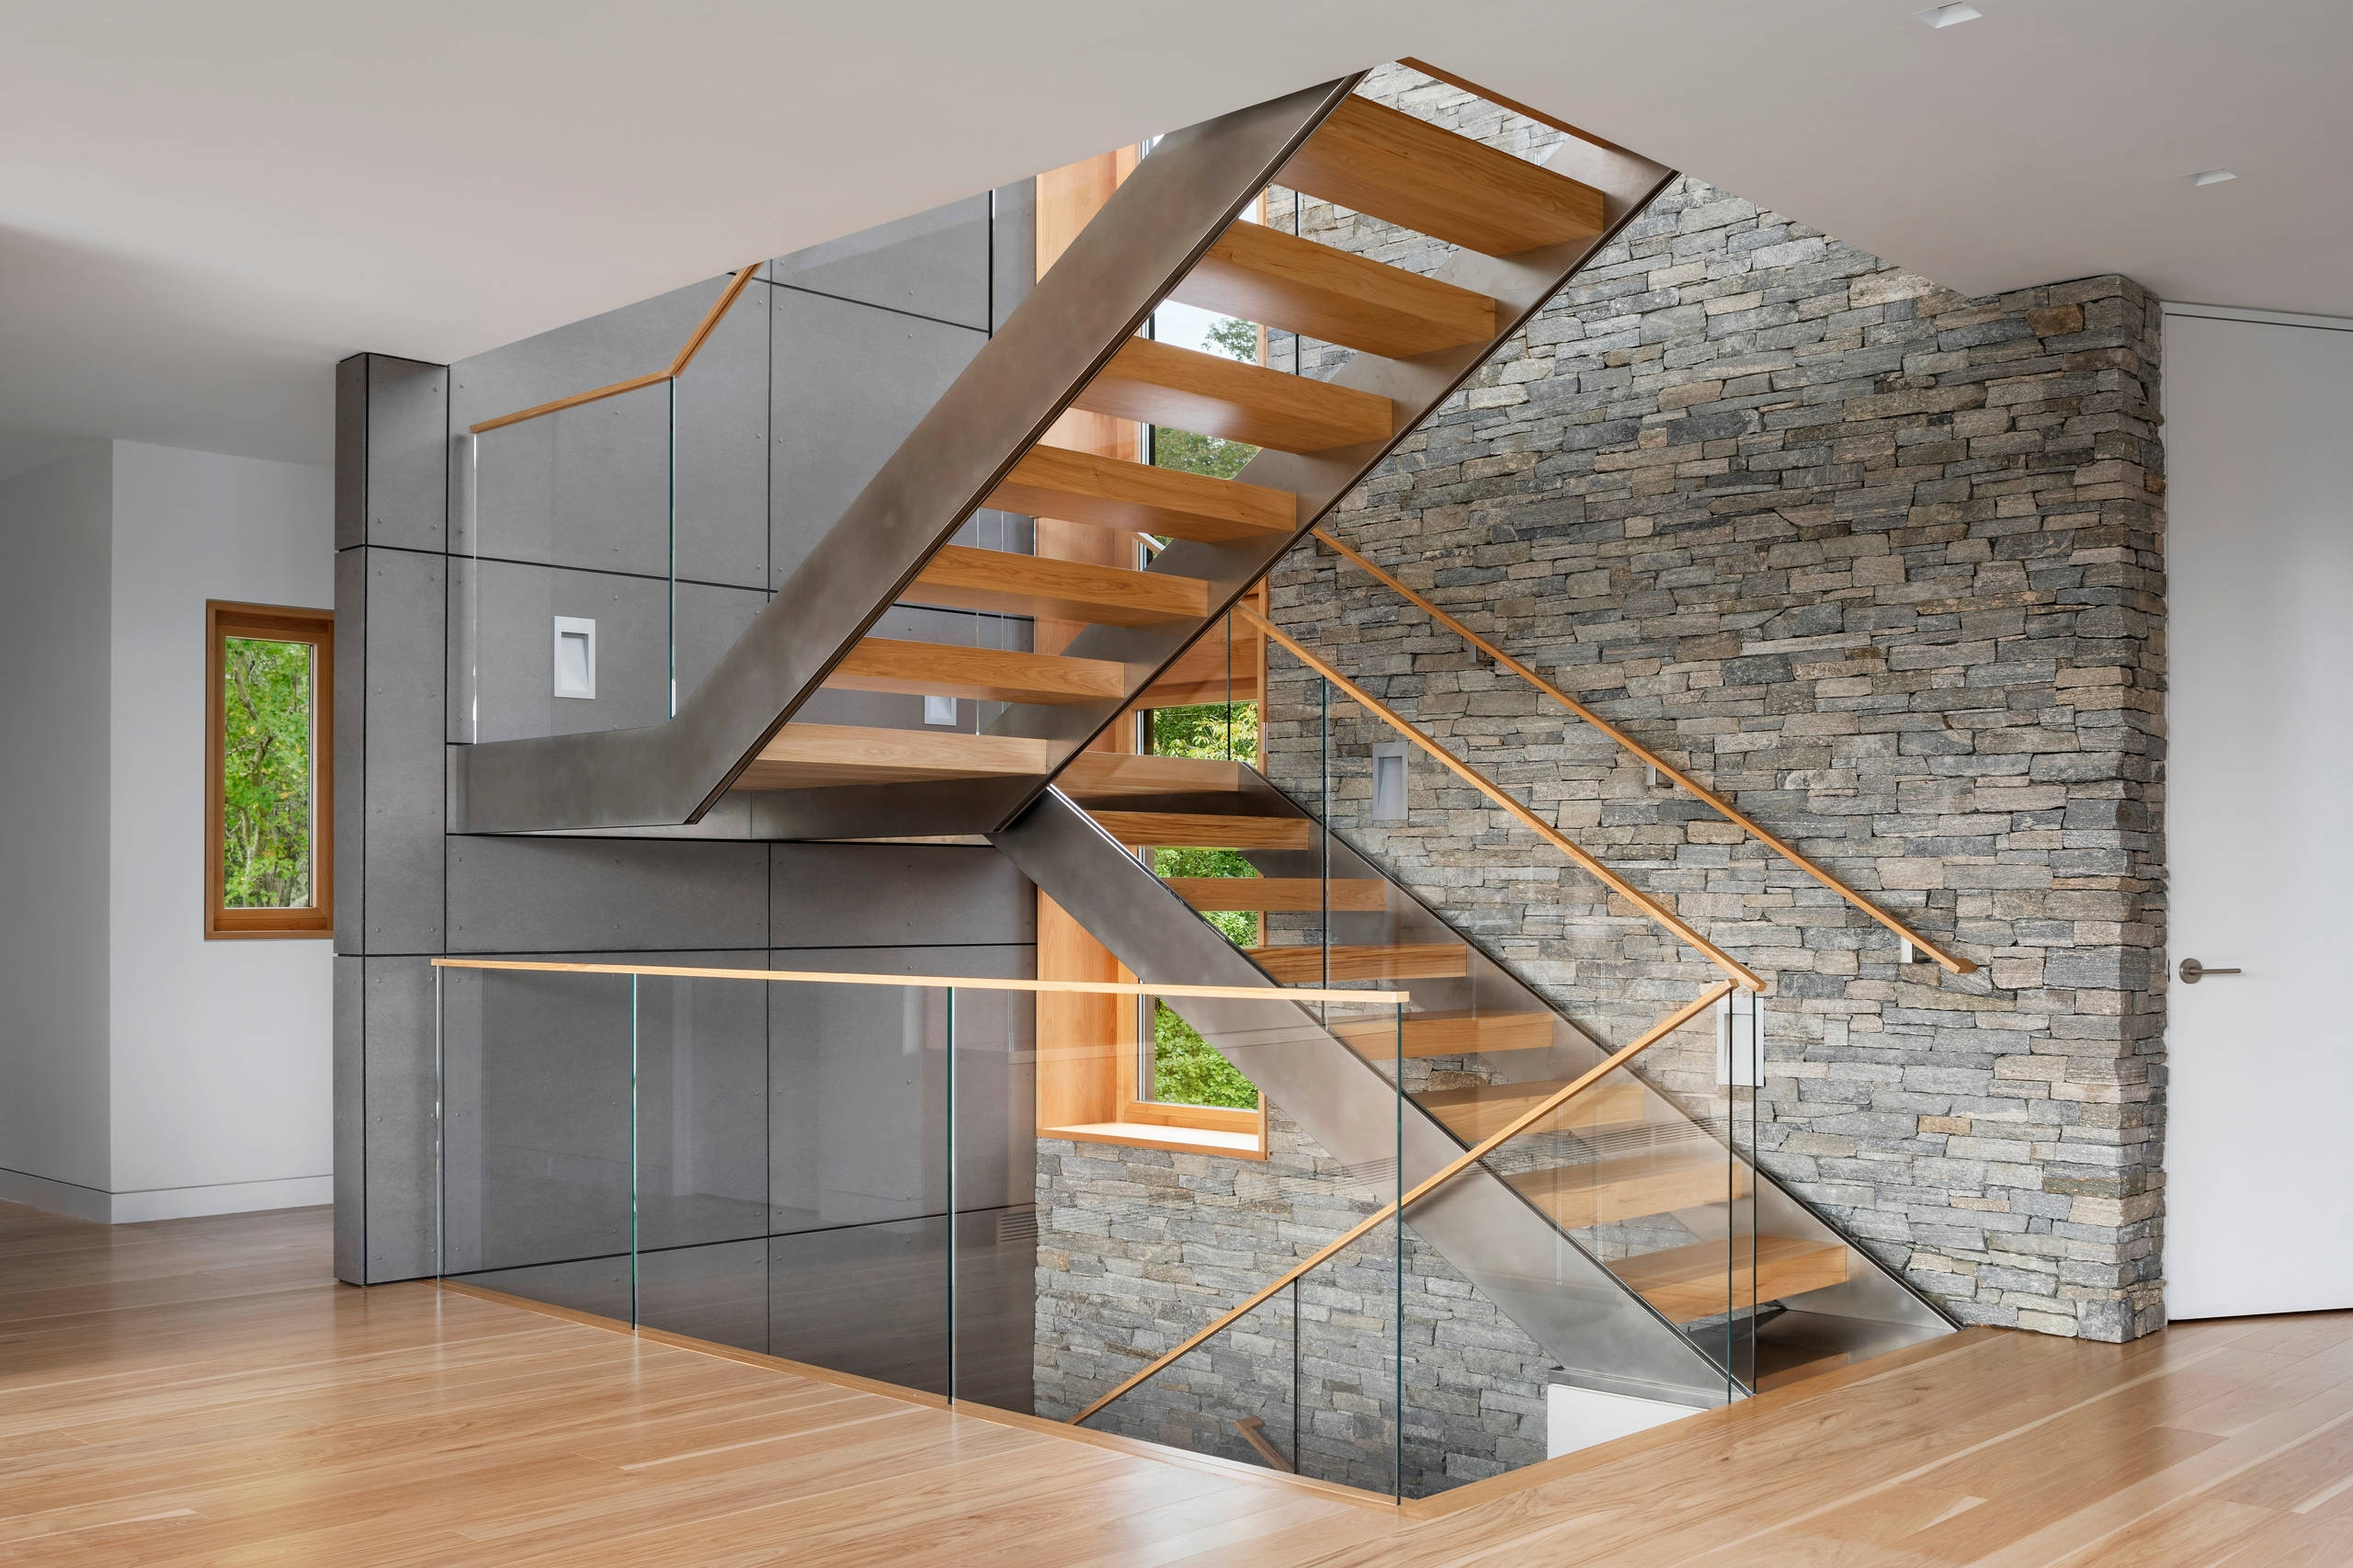 75 Beautiful U Shaped Staircase Pictures Ideas September 2020 | Interior Staircase Design In Main Hall For Duplex House | Residential Stair | Middle Class Village Indian House | View | 16X16 Hall | Beautiful